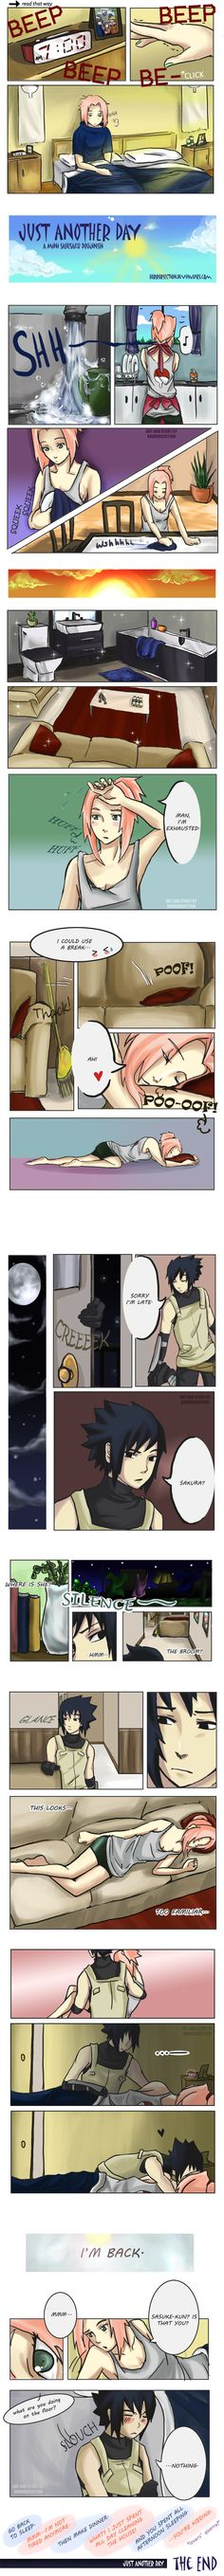 Just Another Day: SasuSaku Doujin by HorrorSection.deviantart.com on @deviantART